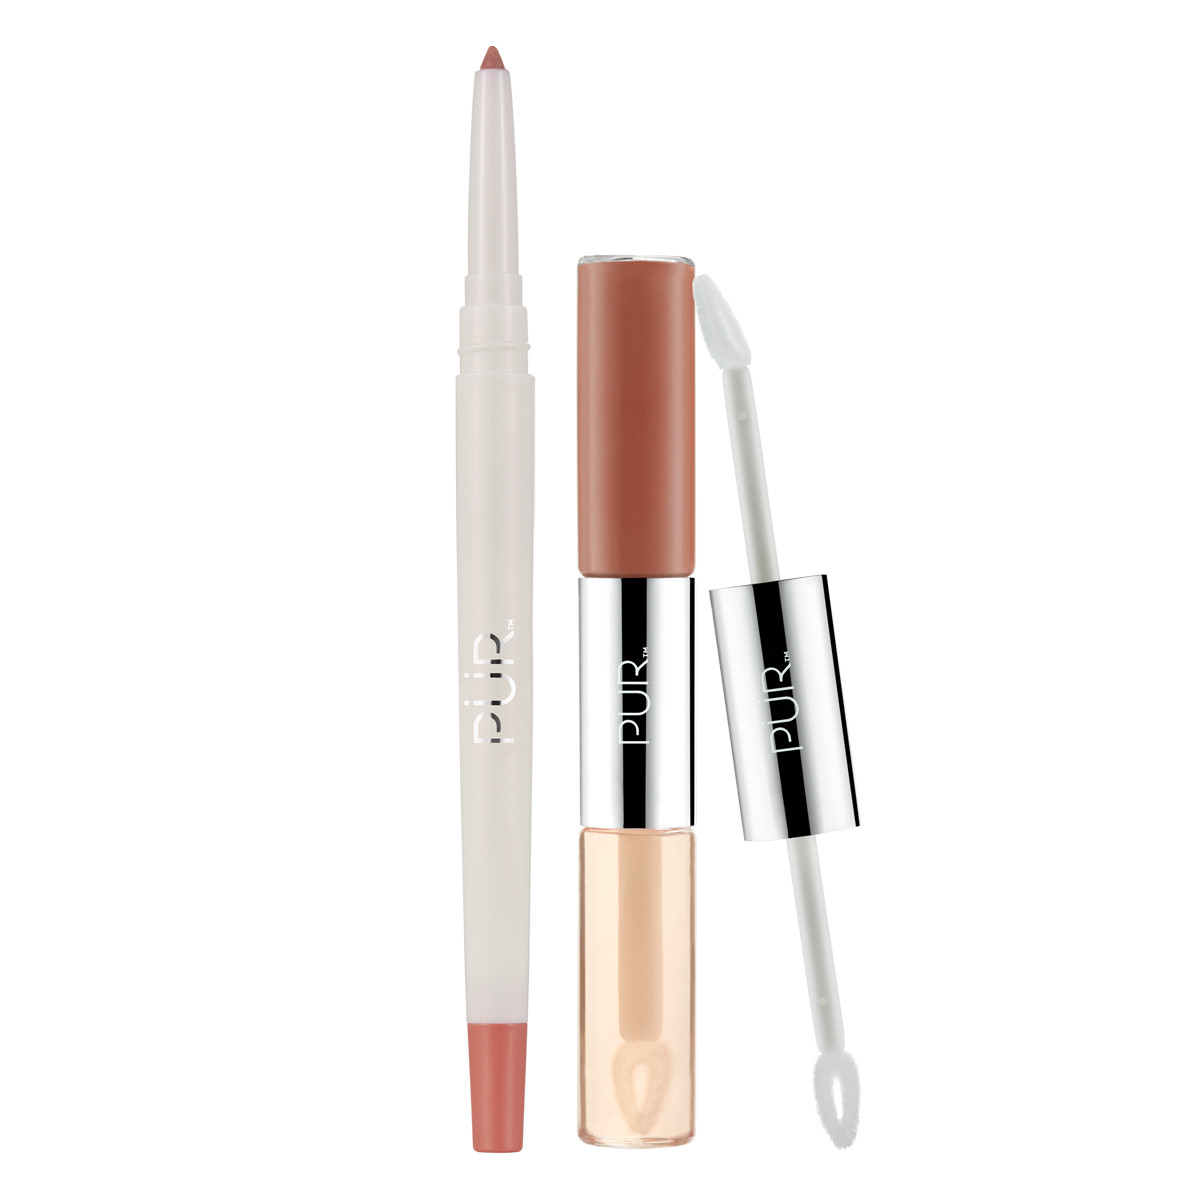 4-in-1 Lip Duo & Liner Bundle in Newlywed/Tutu